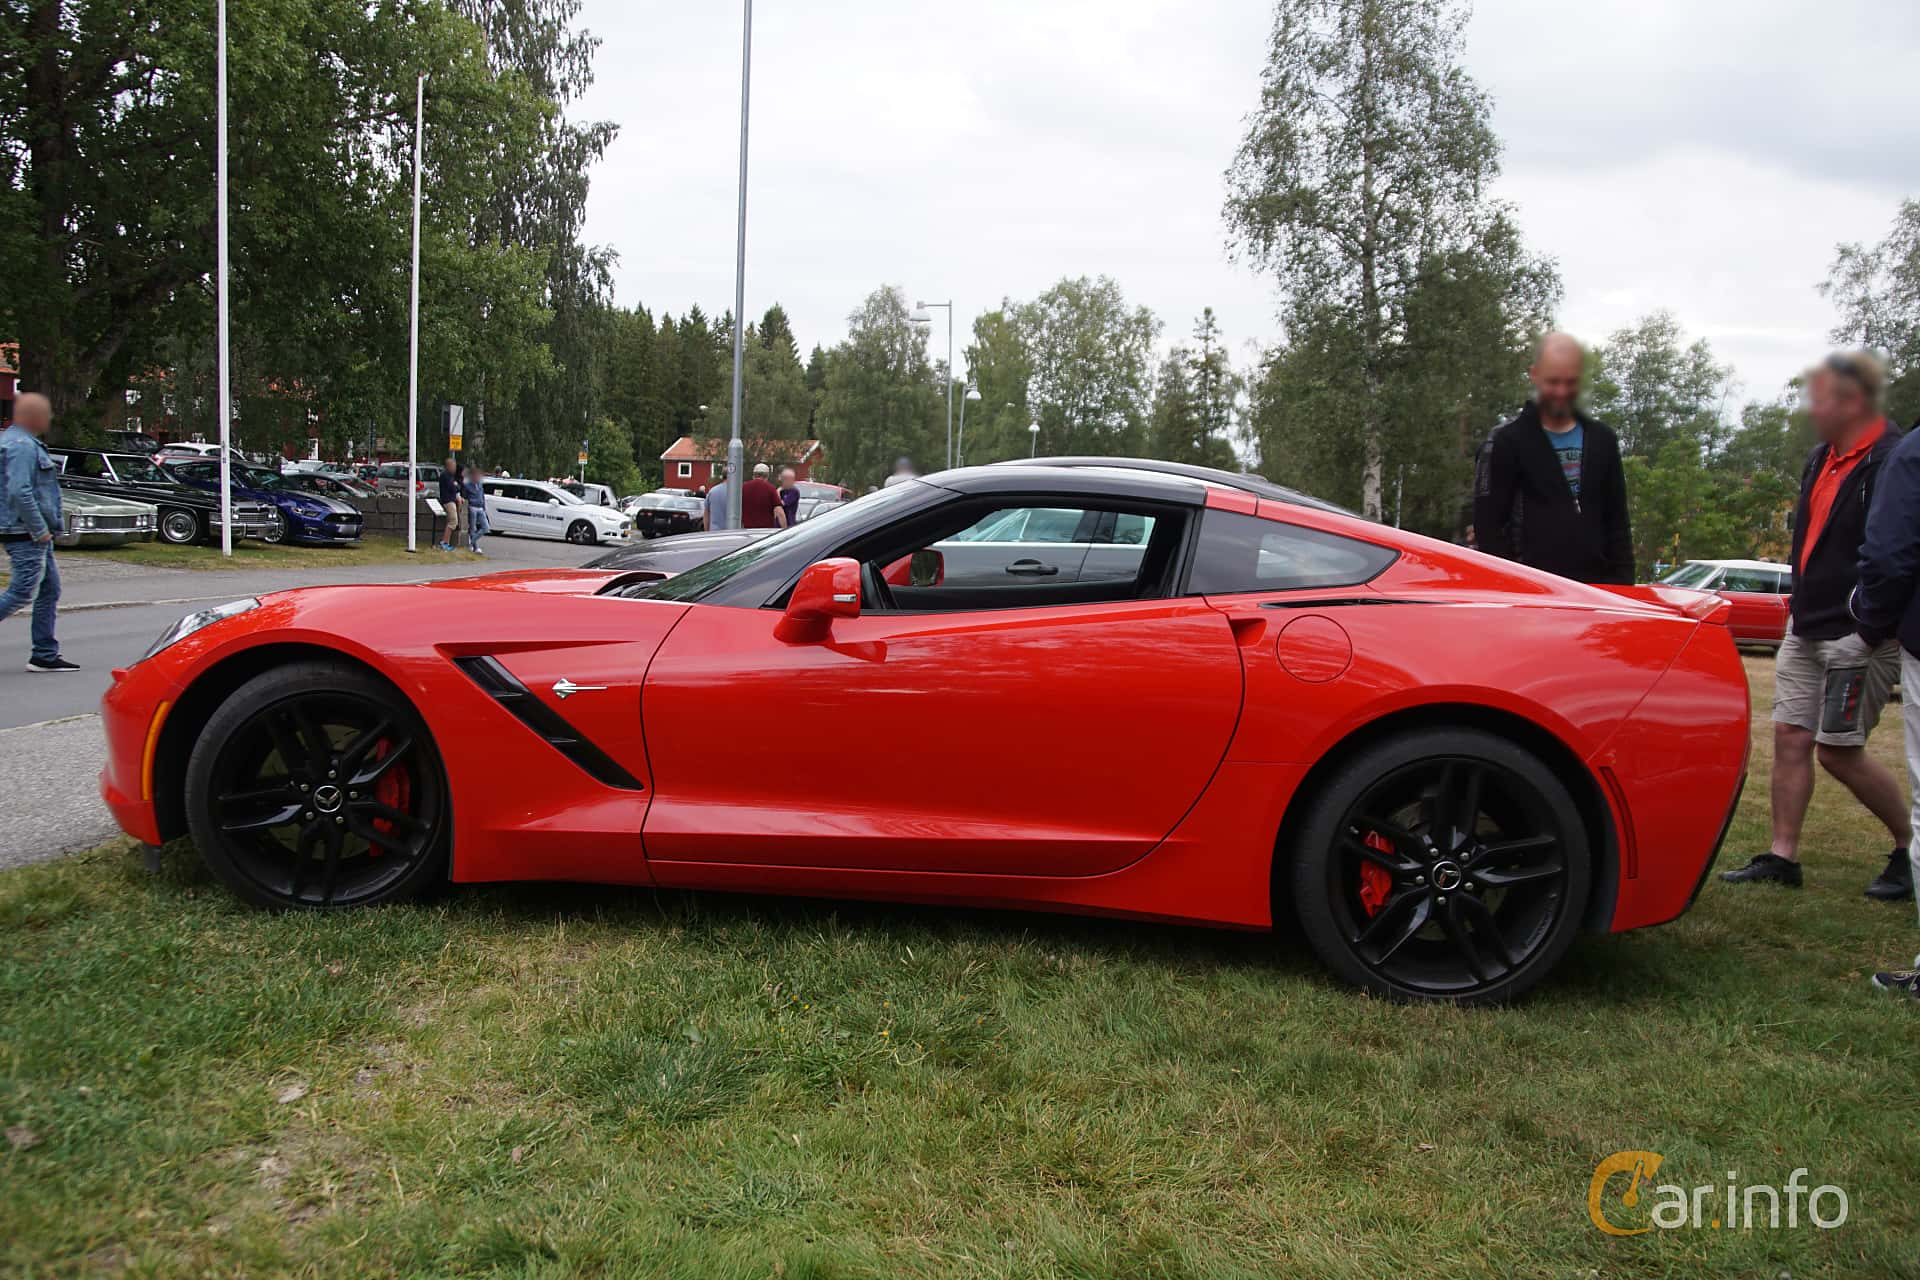 Side  of Chevrolet Corvette 6.2 V8 Manual, 466ps, 2014 at Onsdagsträffar på Gammlia Umeå 2019 vecka 32